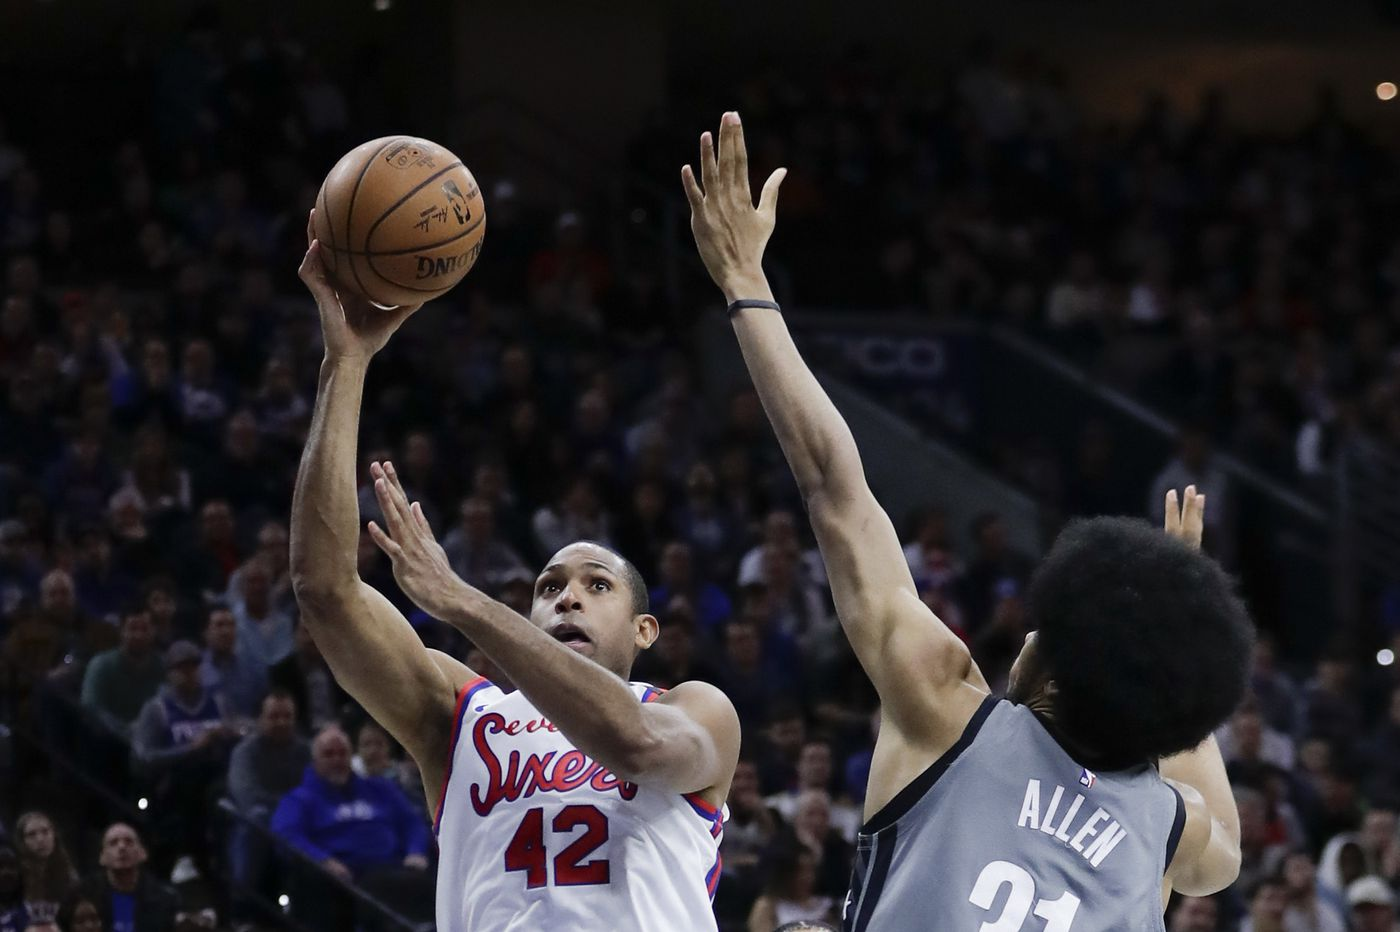 Sixers' Al Horford looks to build on Thursday's performance as team heads west